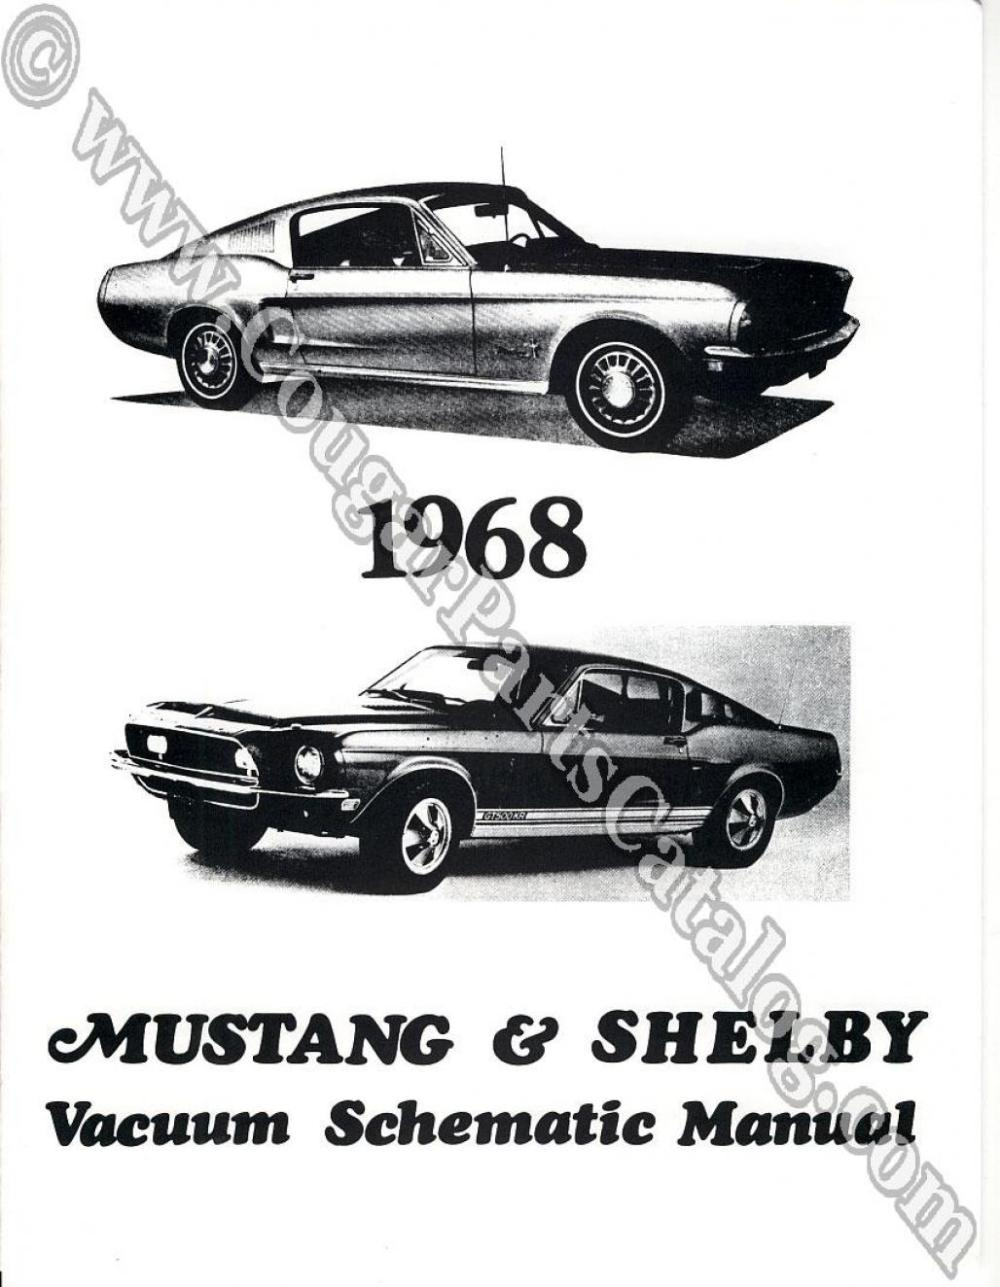 medium resolution of manual vacuum schematic w cougar headlight schematic repro 1968 mercury cougar 1968 ford mustang shelby 1968 mercury cougar 1968 ford